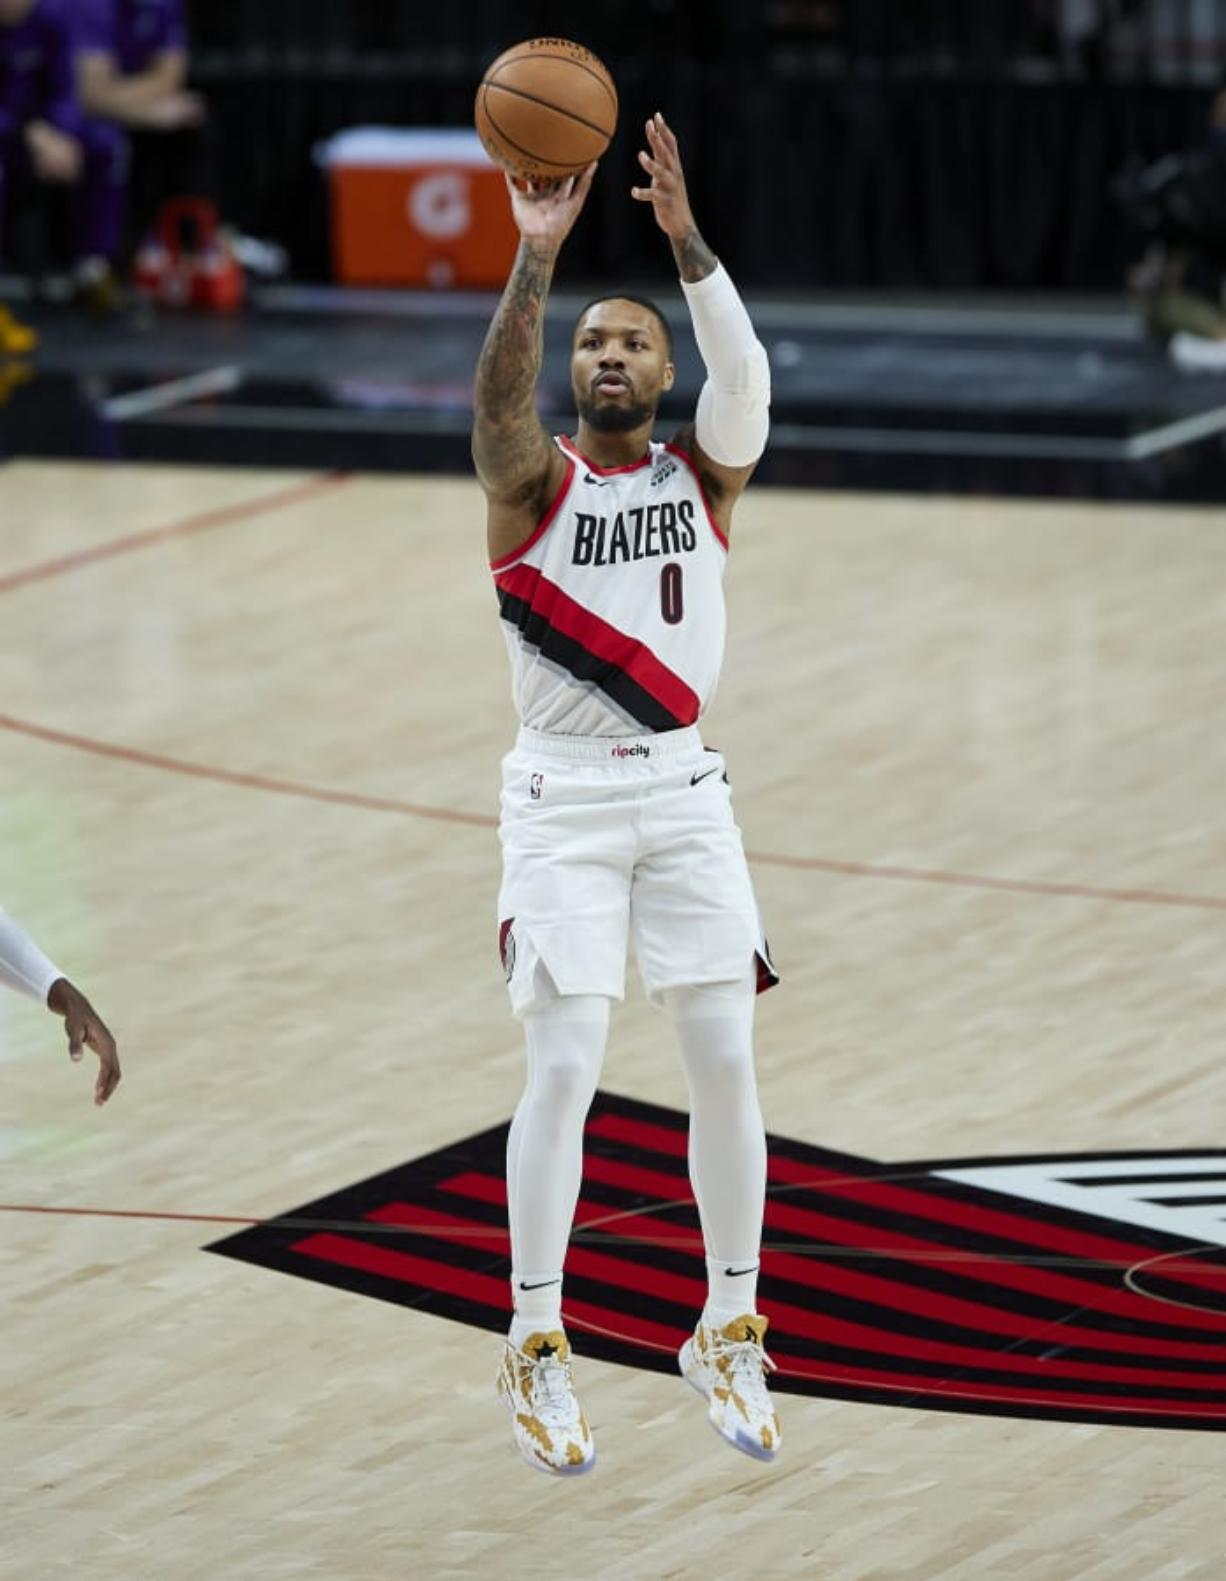 Entering his ninth season with the Portland Trail Blazers, guard Damian Lillard would like nothing better than to have a chance to win an NBA title in Portland.